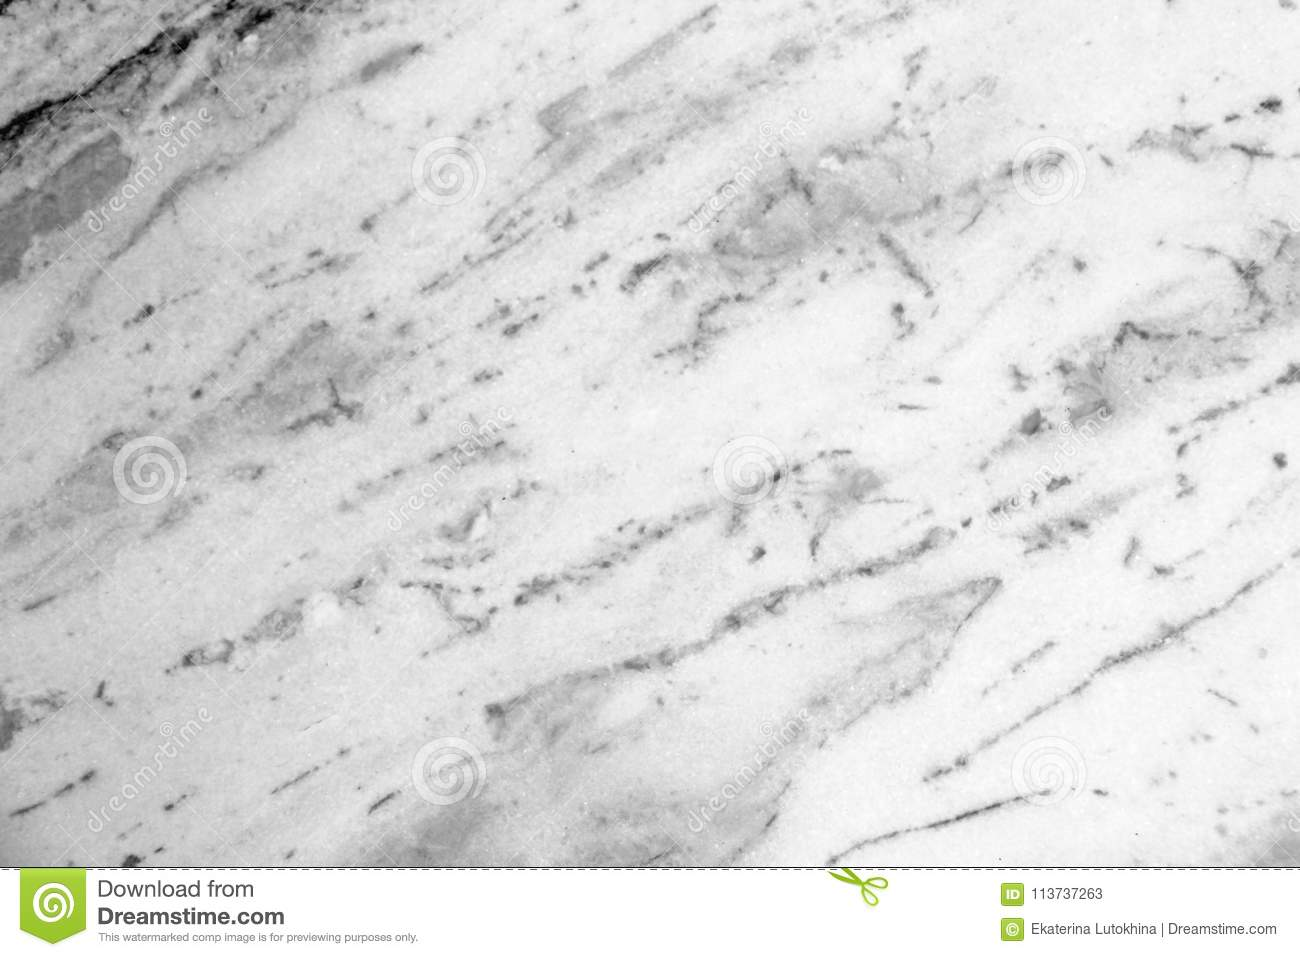 Amazing Wallpaper Marble Background - marble-texture-background-abstract-gray-marble-stone-wallpaper-marble-background-abstract-gray-marble-stone-wallpaper-texture-113737263  You Should Have_782170.jpg